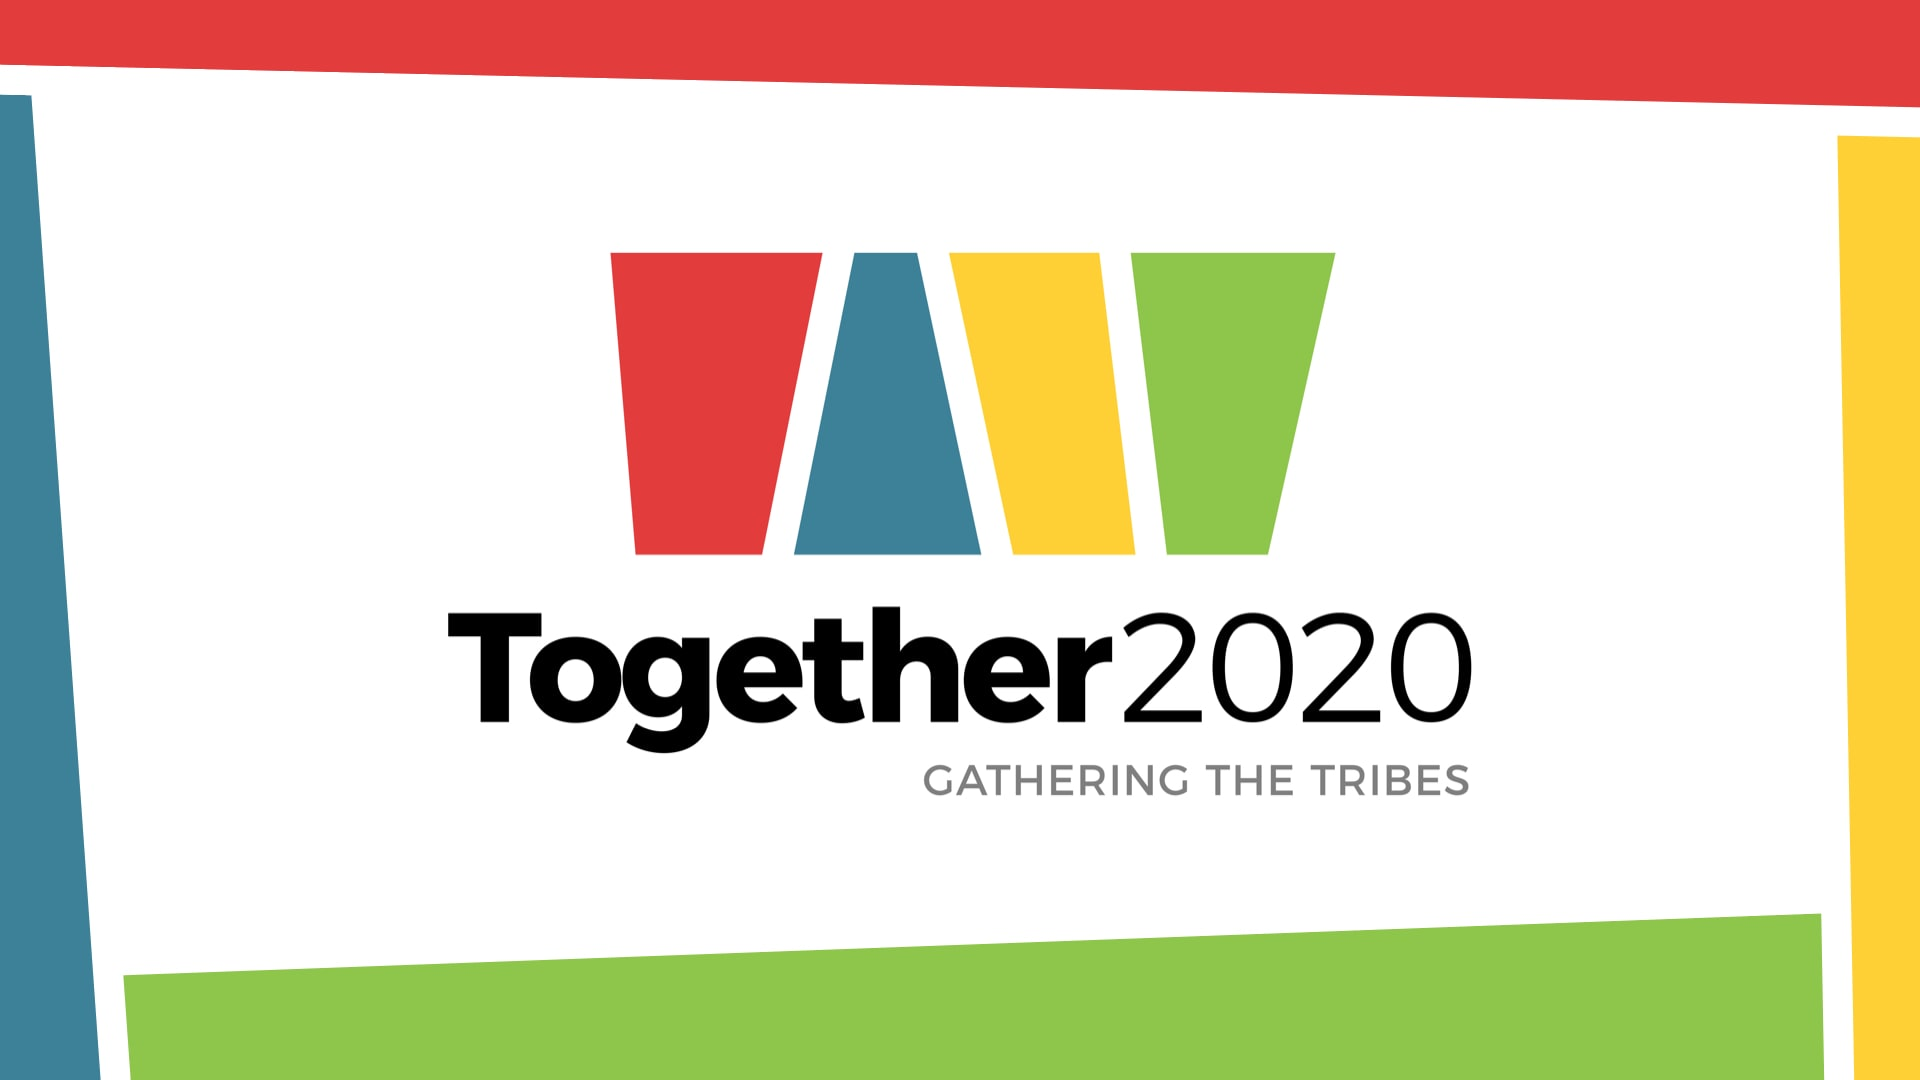 Together 2020